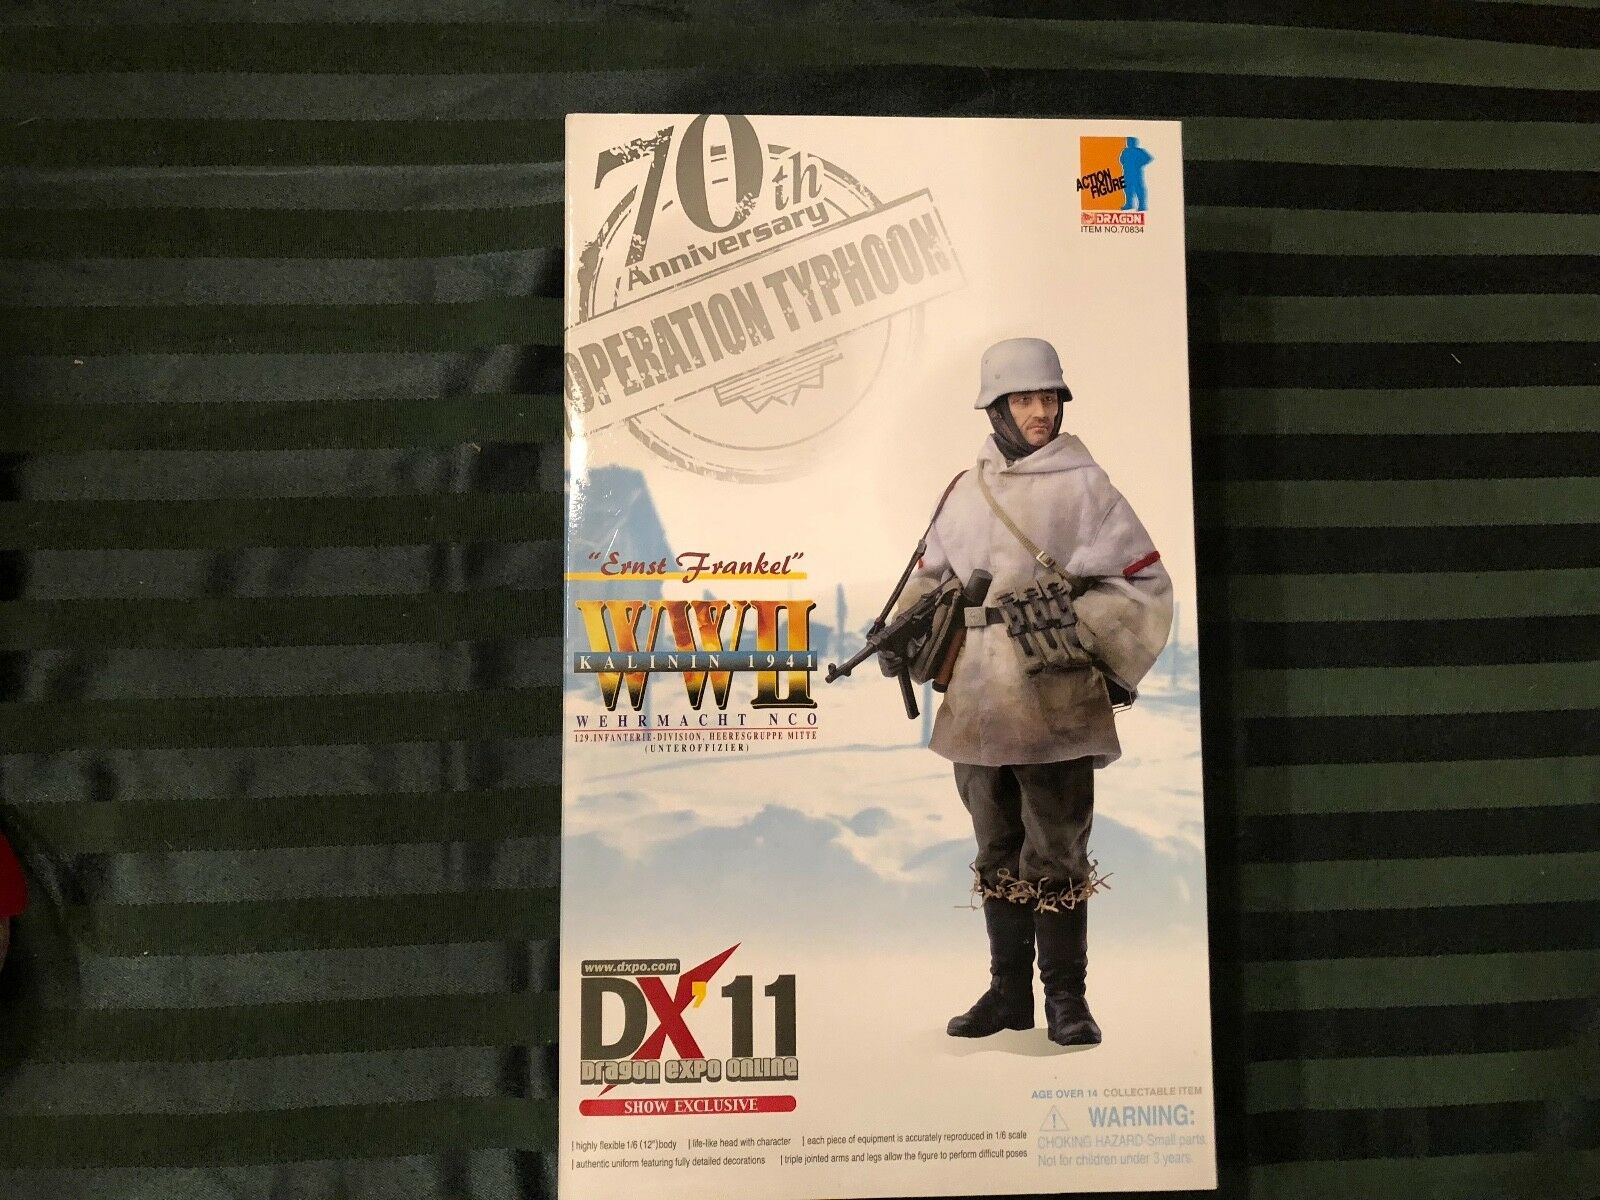 Dragon WWII 1/6 DX11 Exclusive Wehrmacht NCO